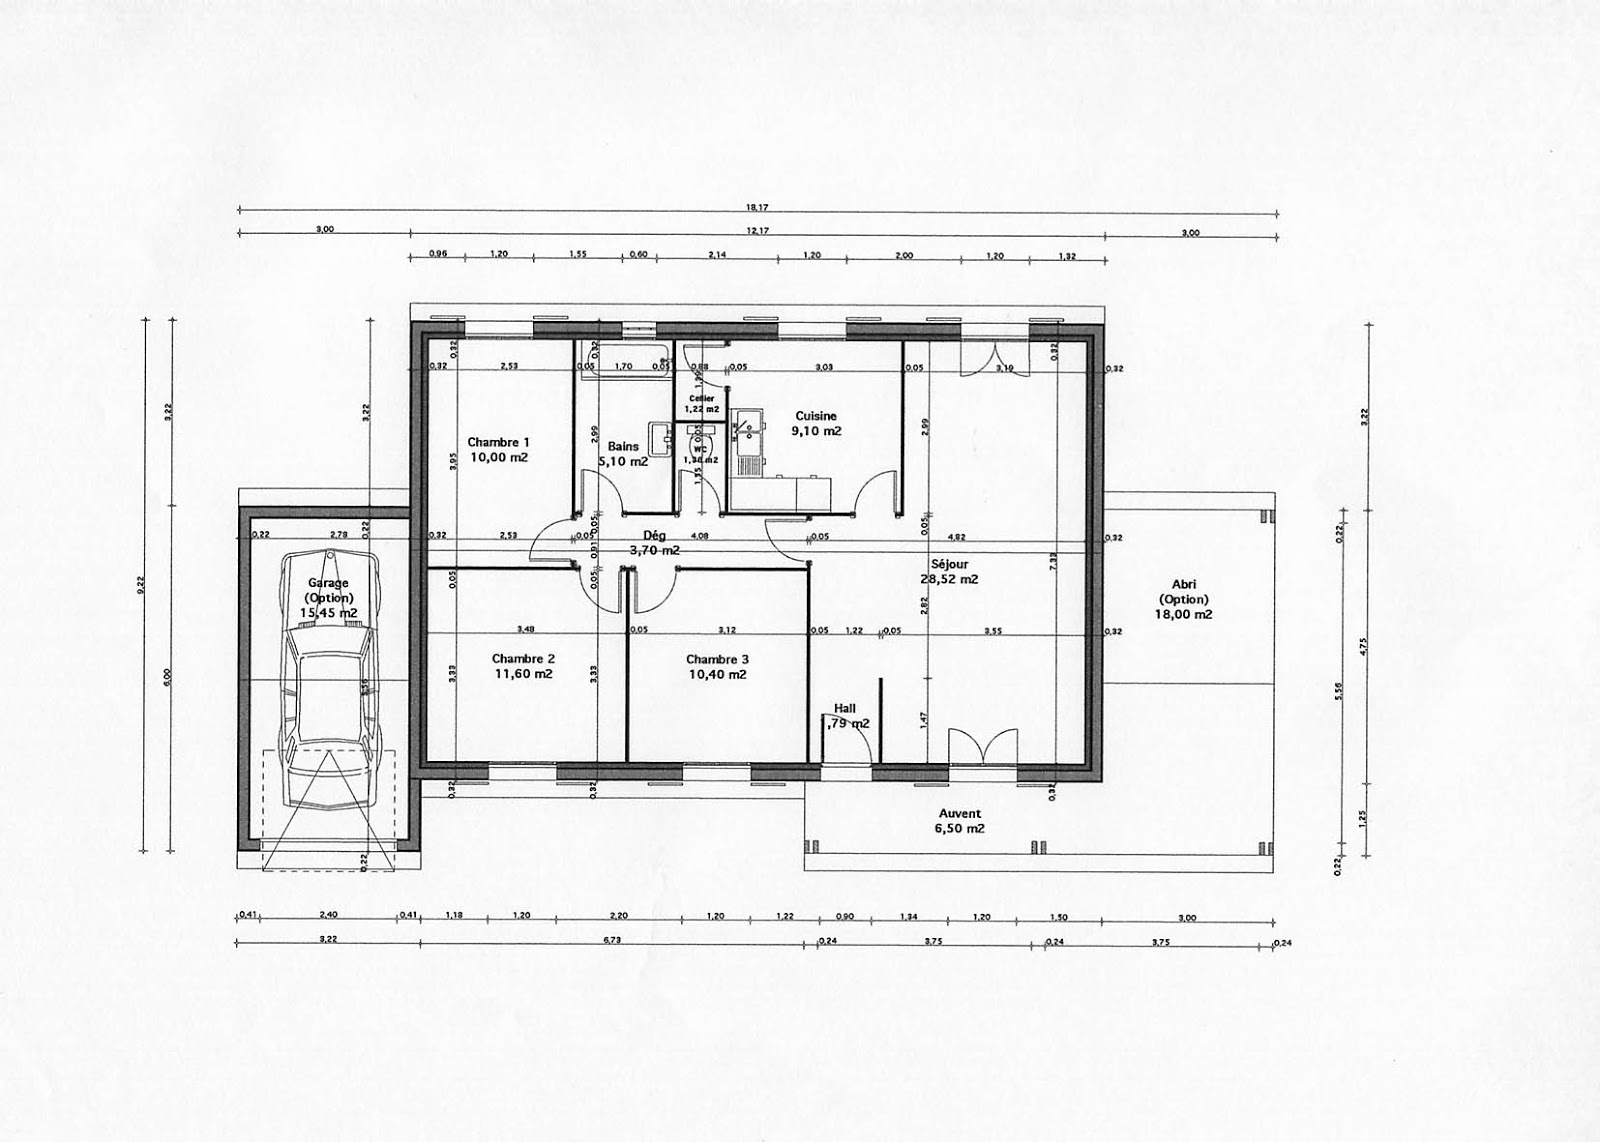 Plan maison contemporaine - Des plans des maisons modernes ...